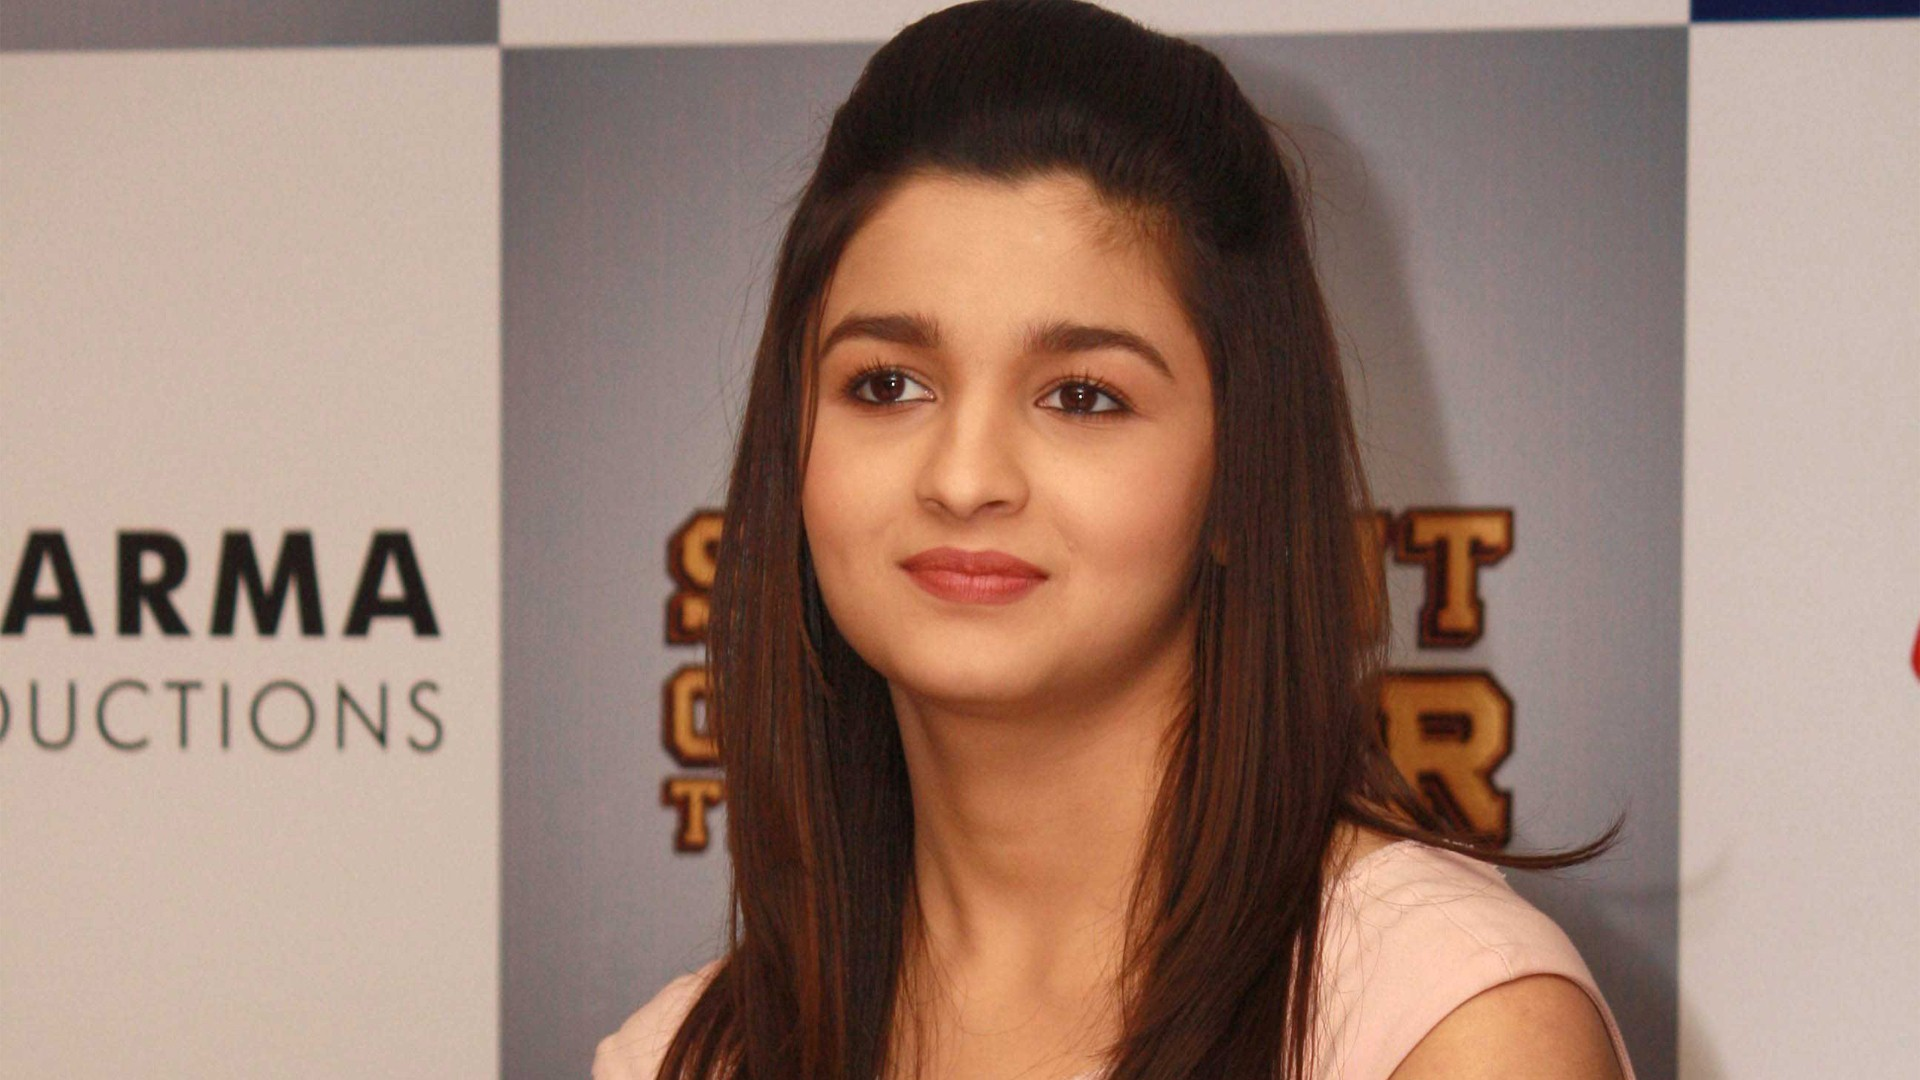 Alia Bhatt High Definition Wallpapers  Page  of HD Images 1920x1080